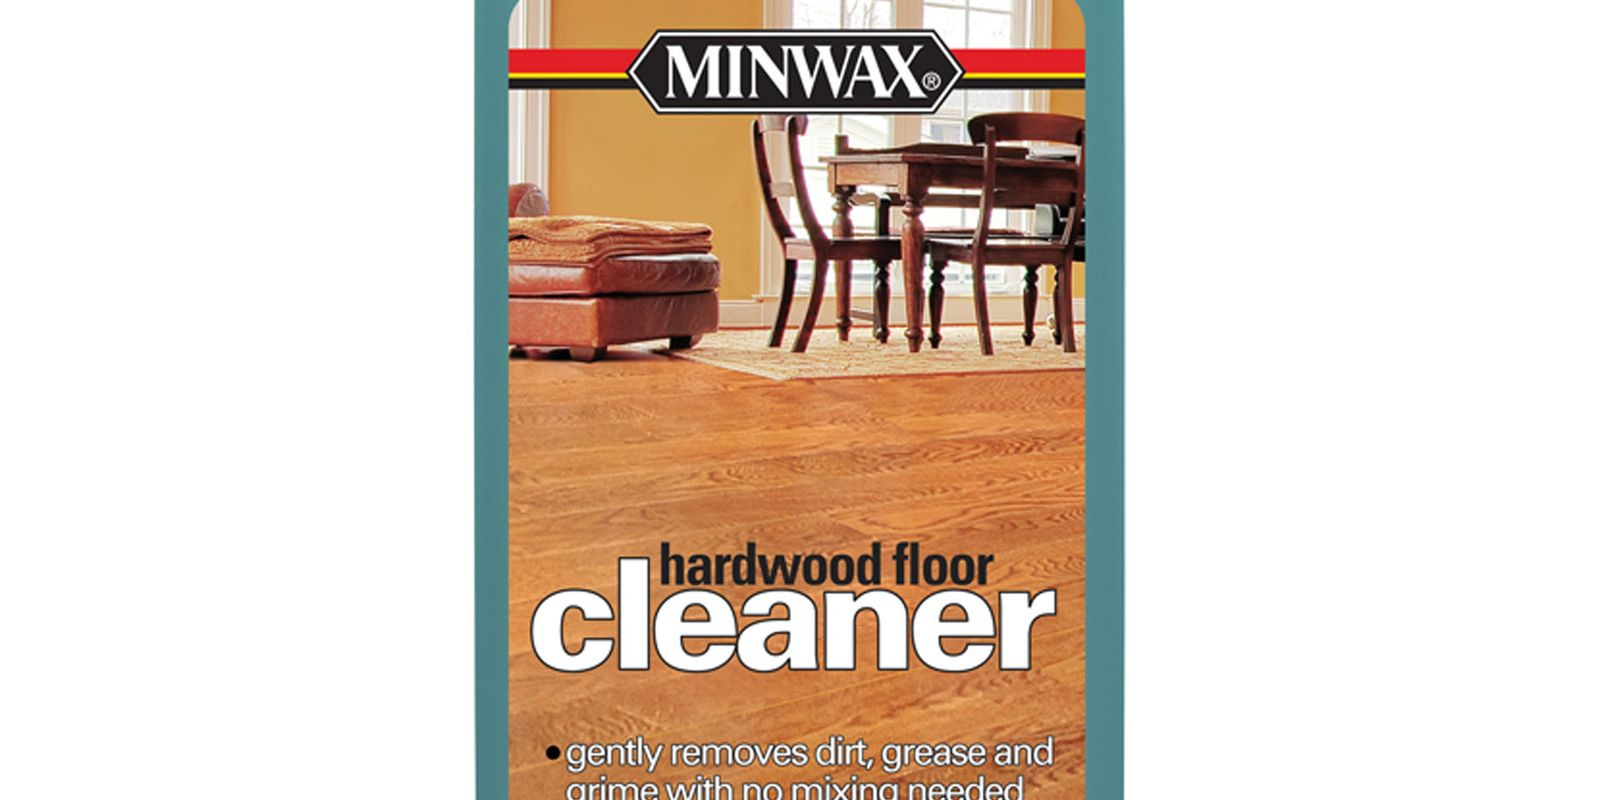 Cleaner For Hardwood Floors mariakraynova shutterstock mariakraynova March 2014